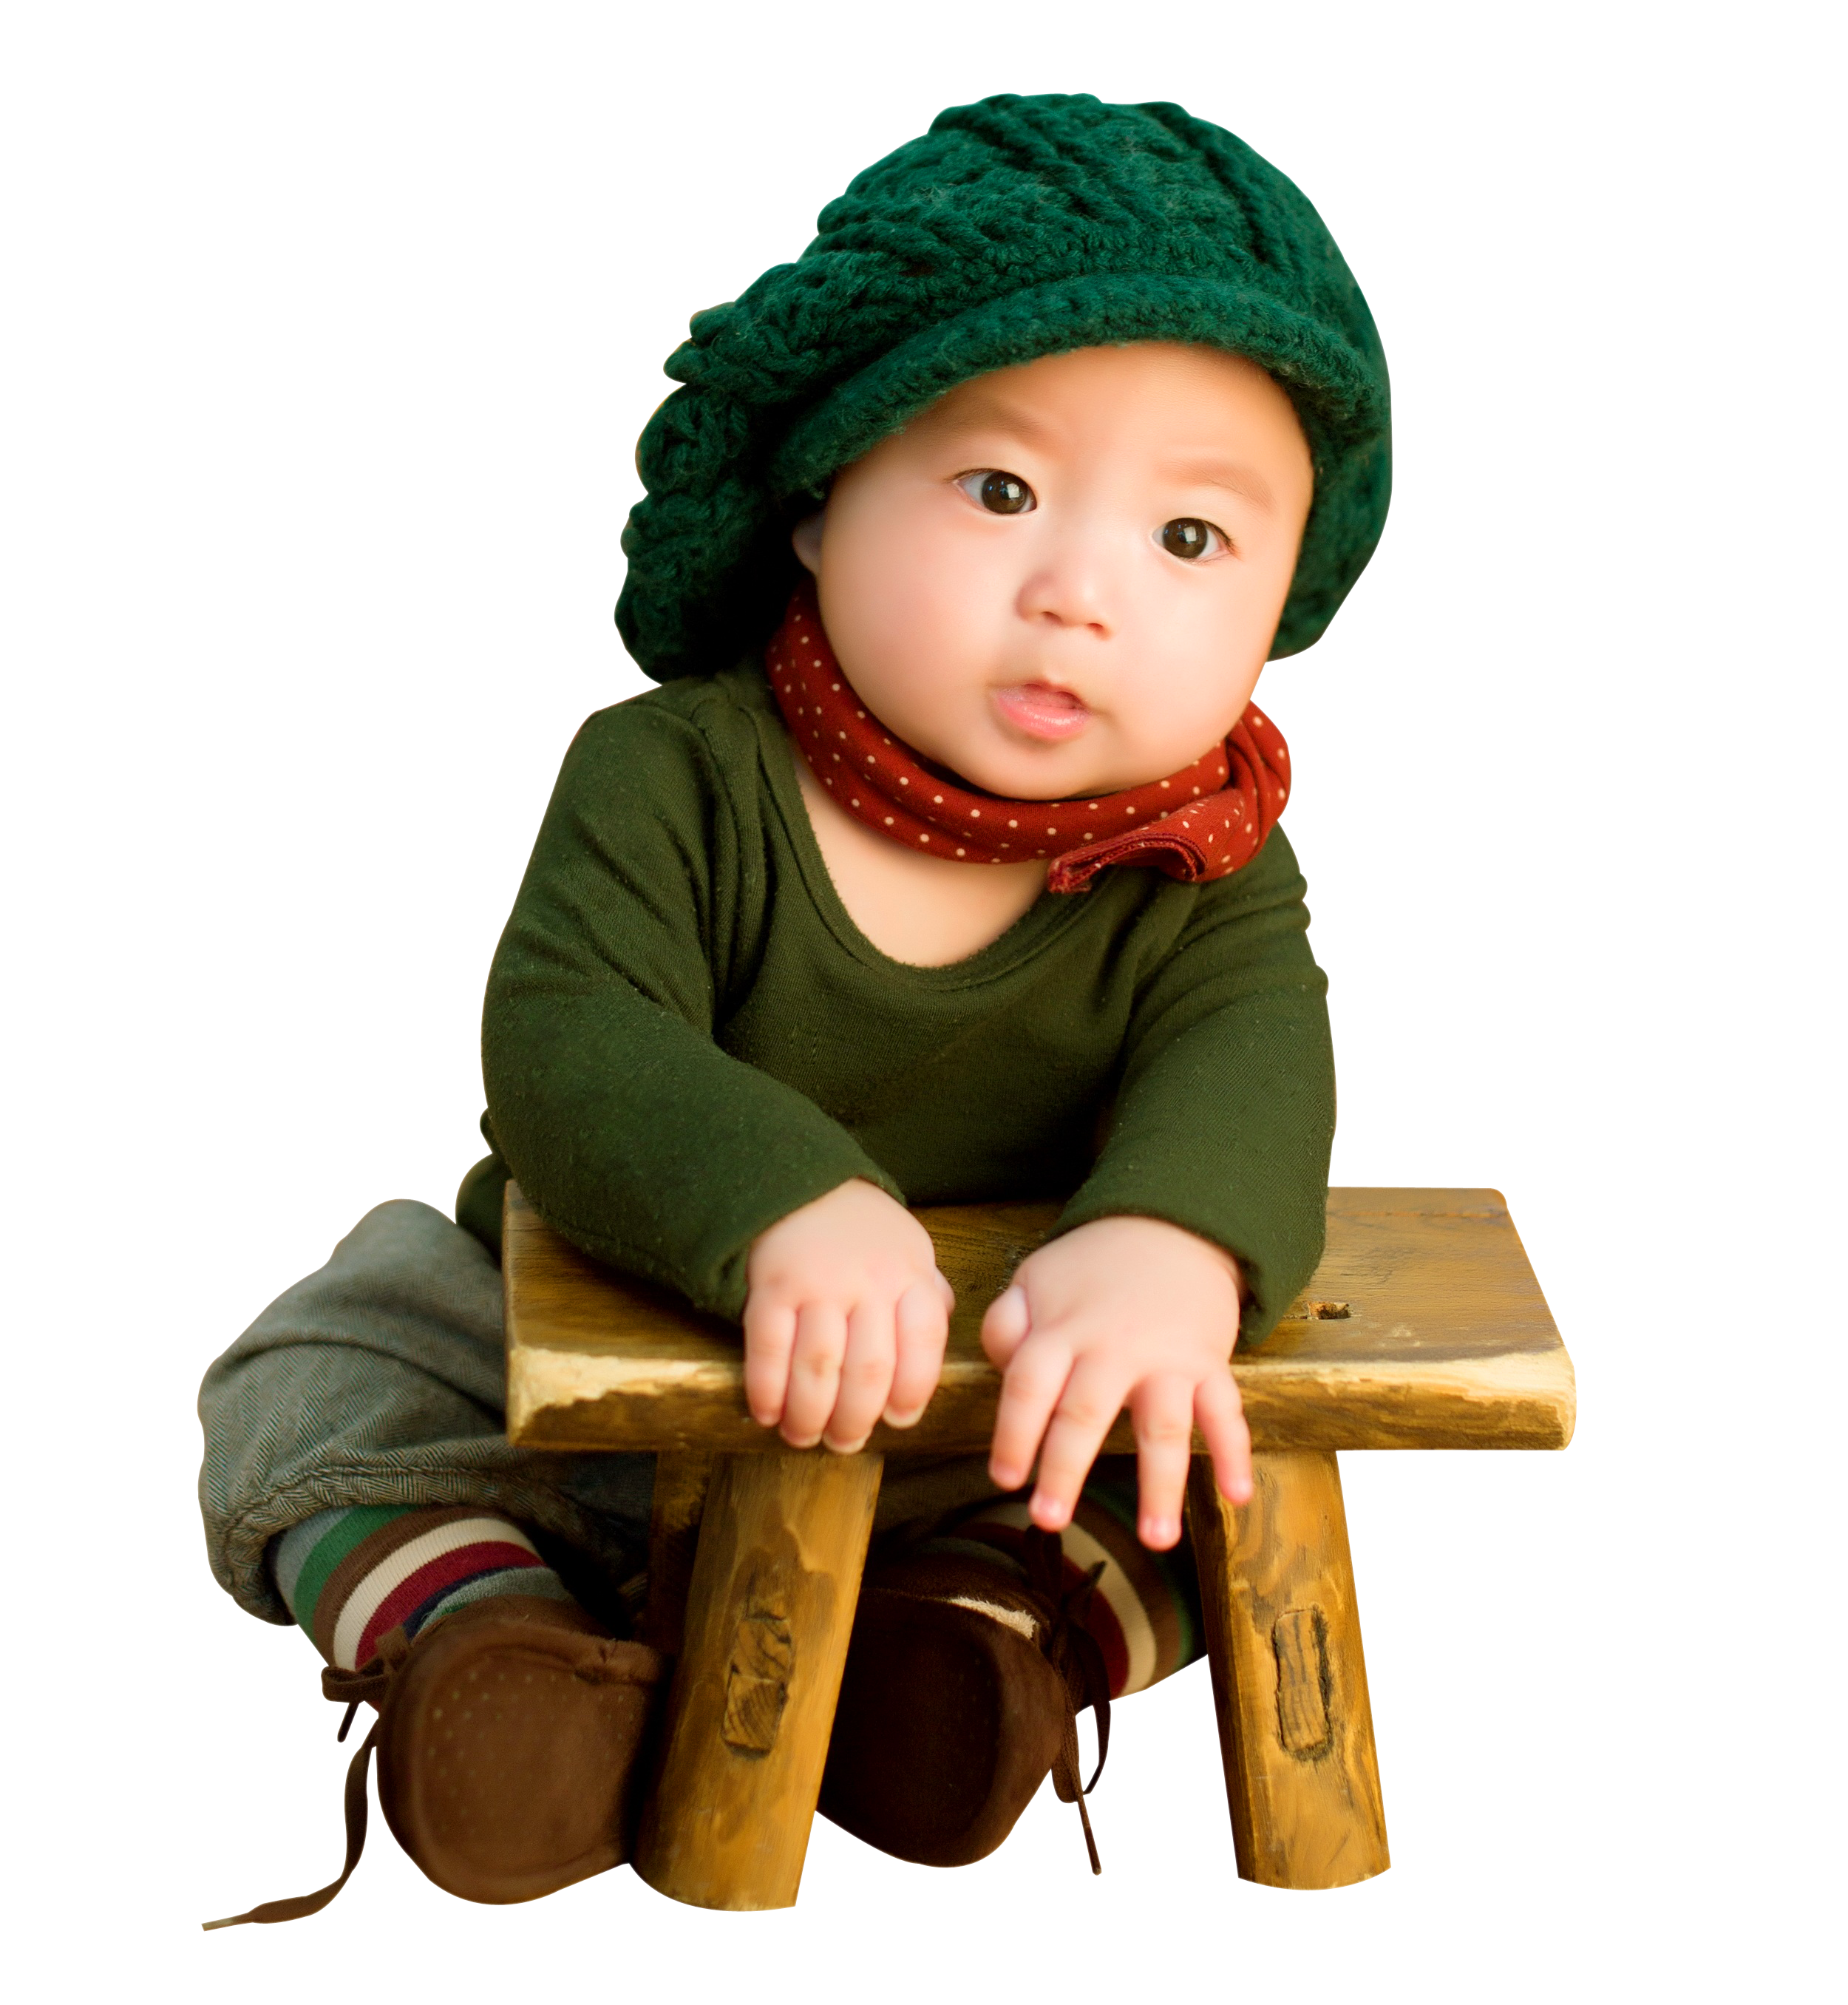 Kid png. Baby images free download